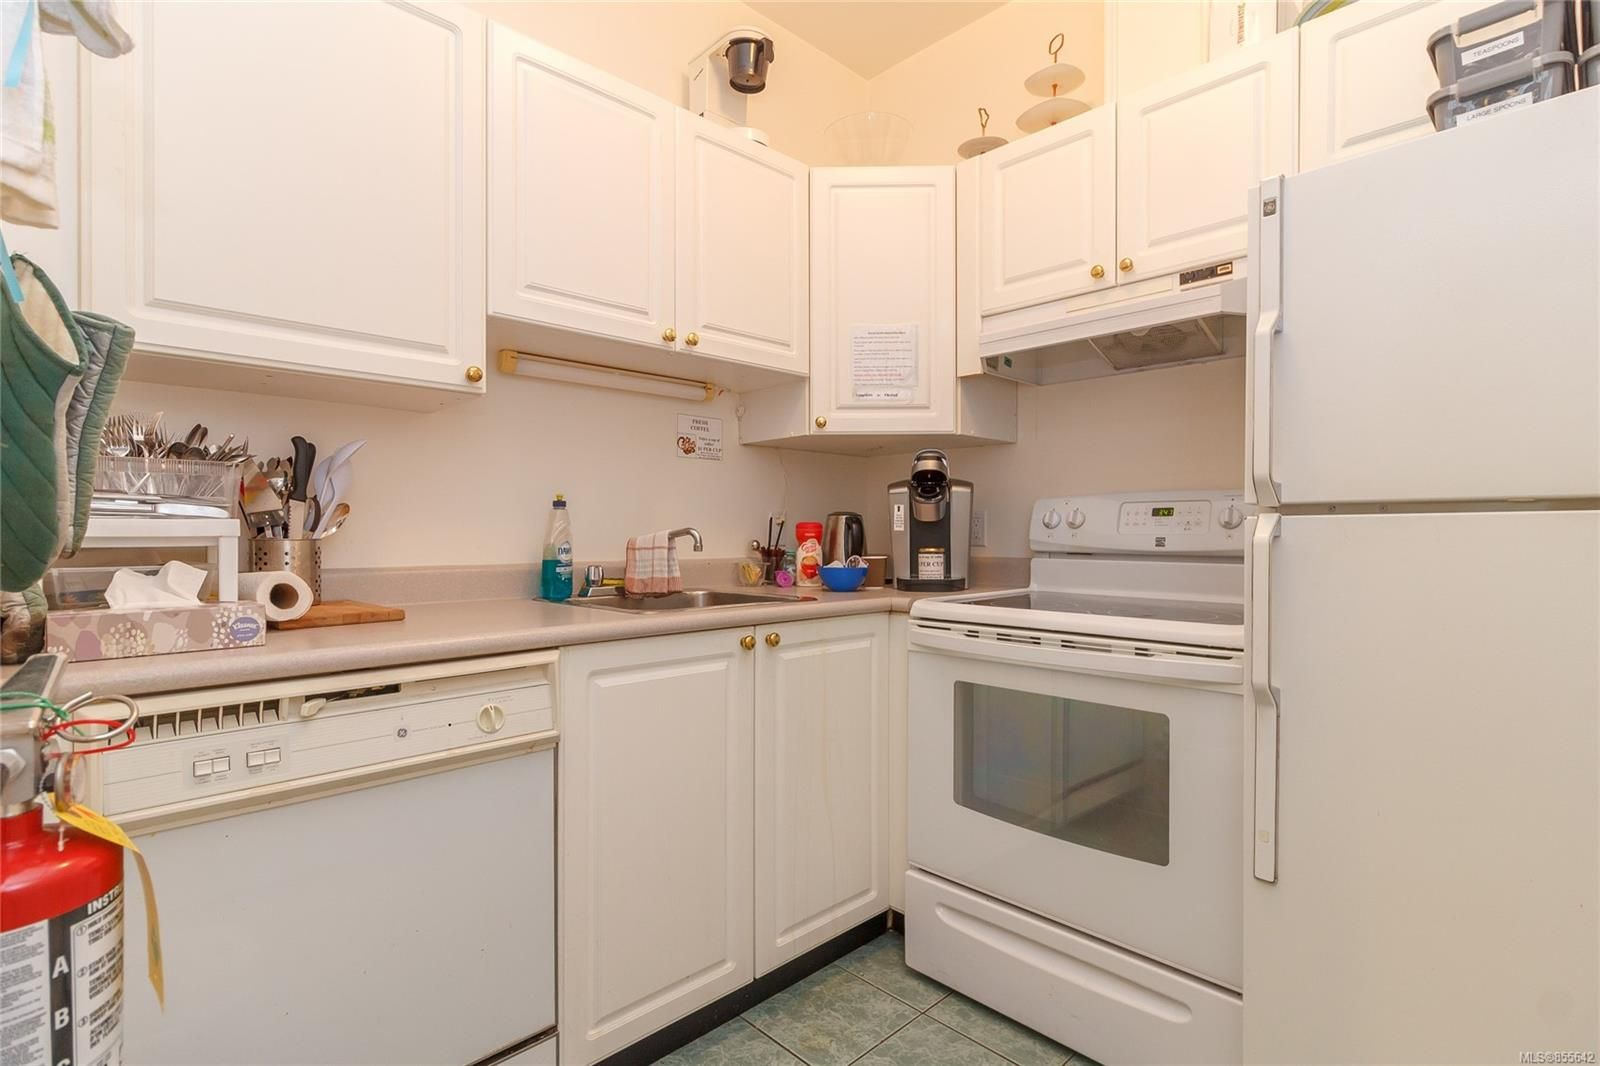 Photo 31: Photos: 52 14 Erskine Lane in : VR Hospital Row/Townhouse for sale (View Royal)  : MLS®# 855642